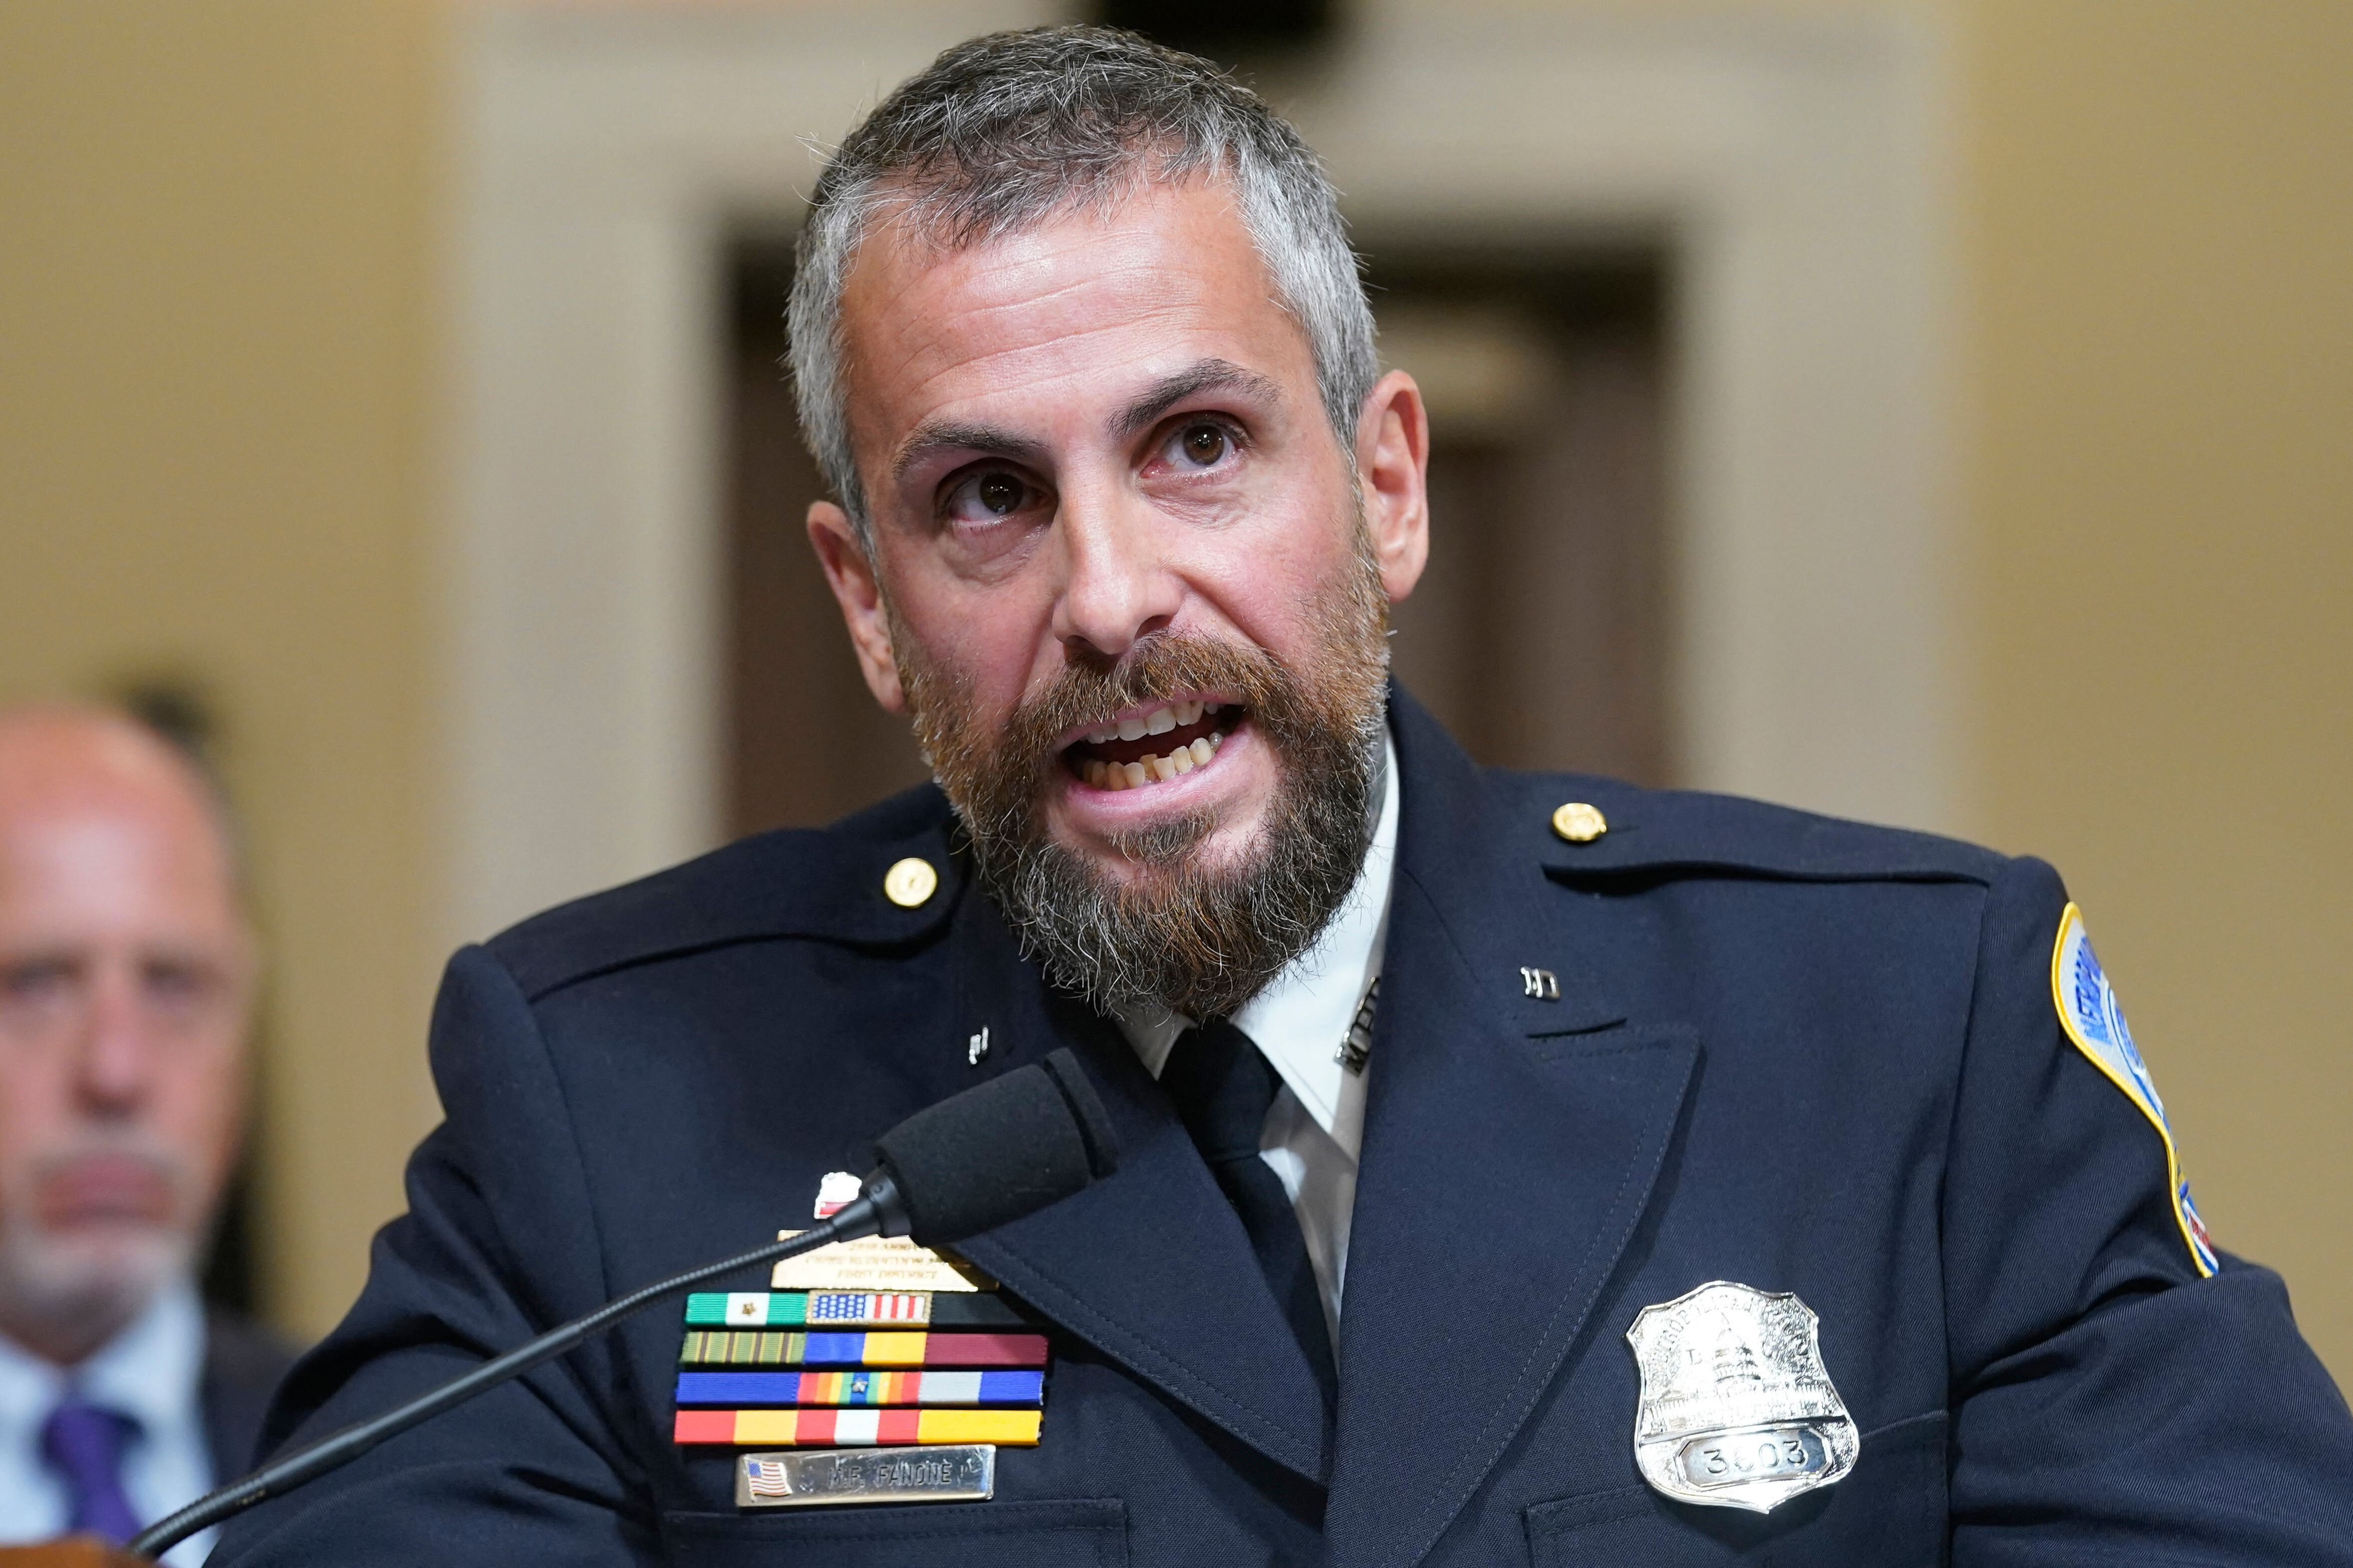 DC Metropolitan Police Department Officer Michael Fanone testifies during the select committee investigation of the Jan. 6 at